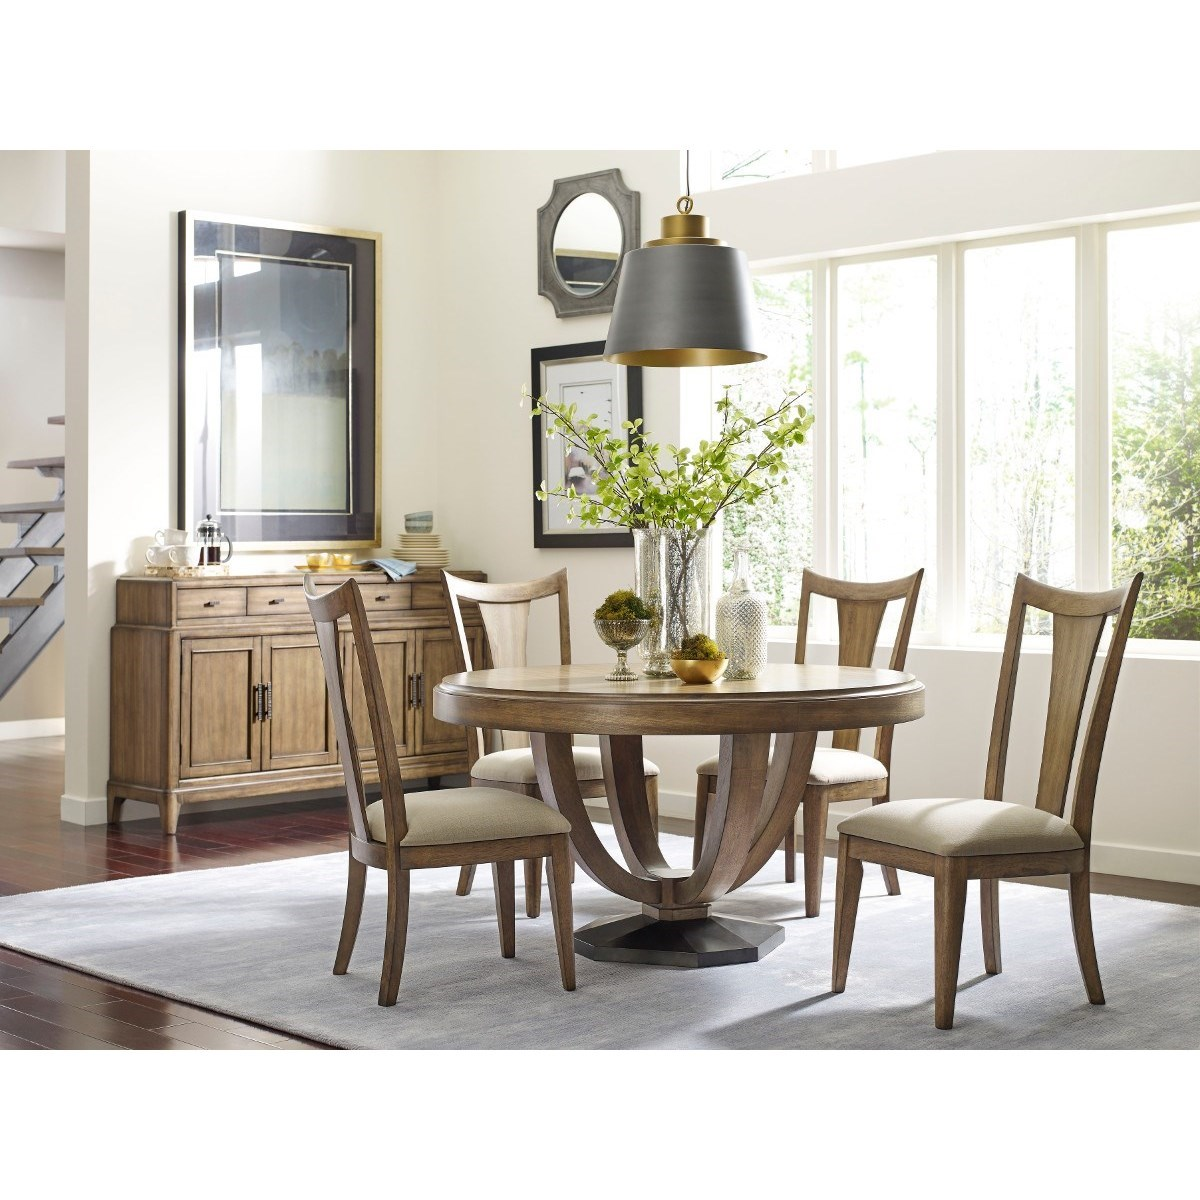 american drew evoke casual dining room group hudson s american drew antigua dining room collection